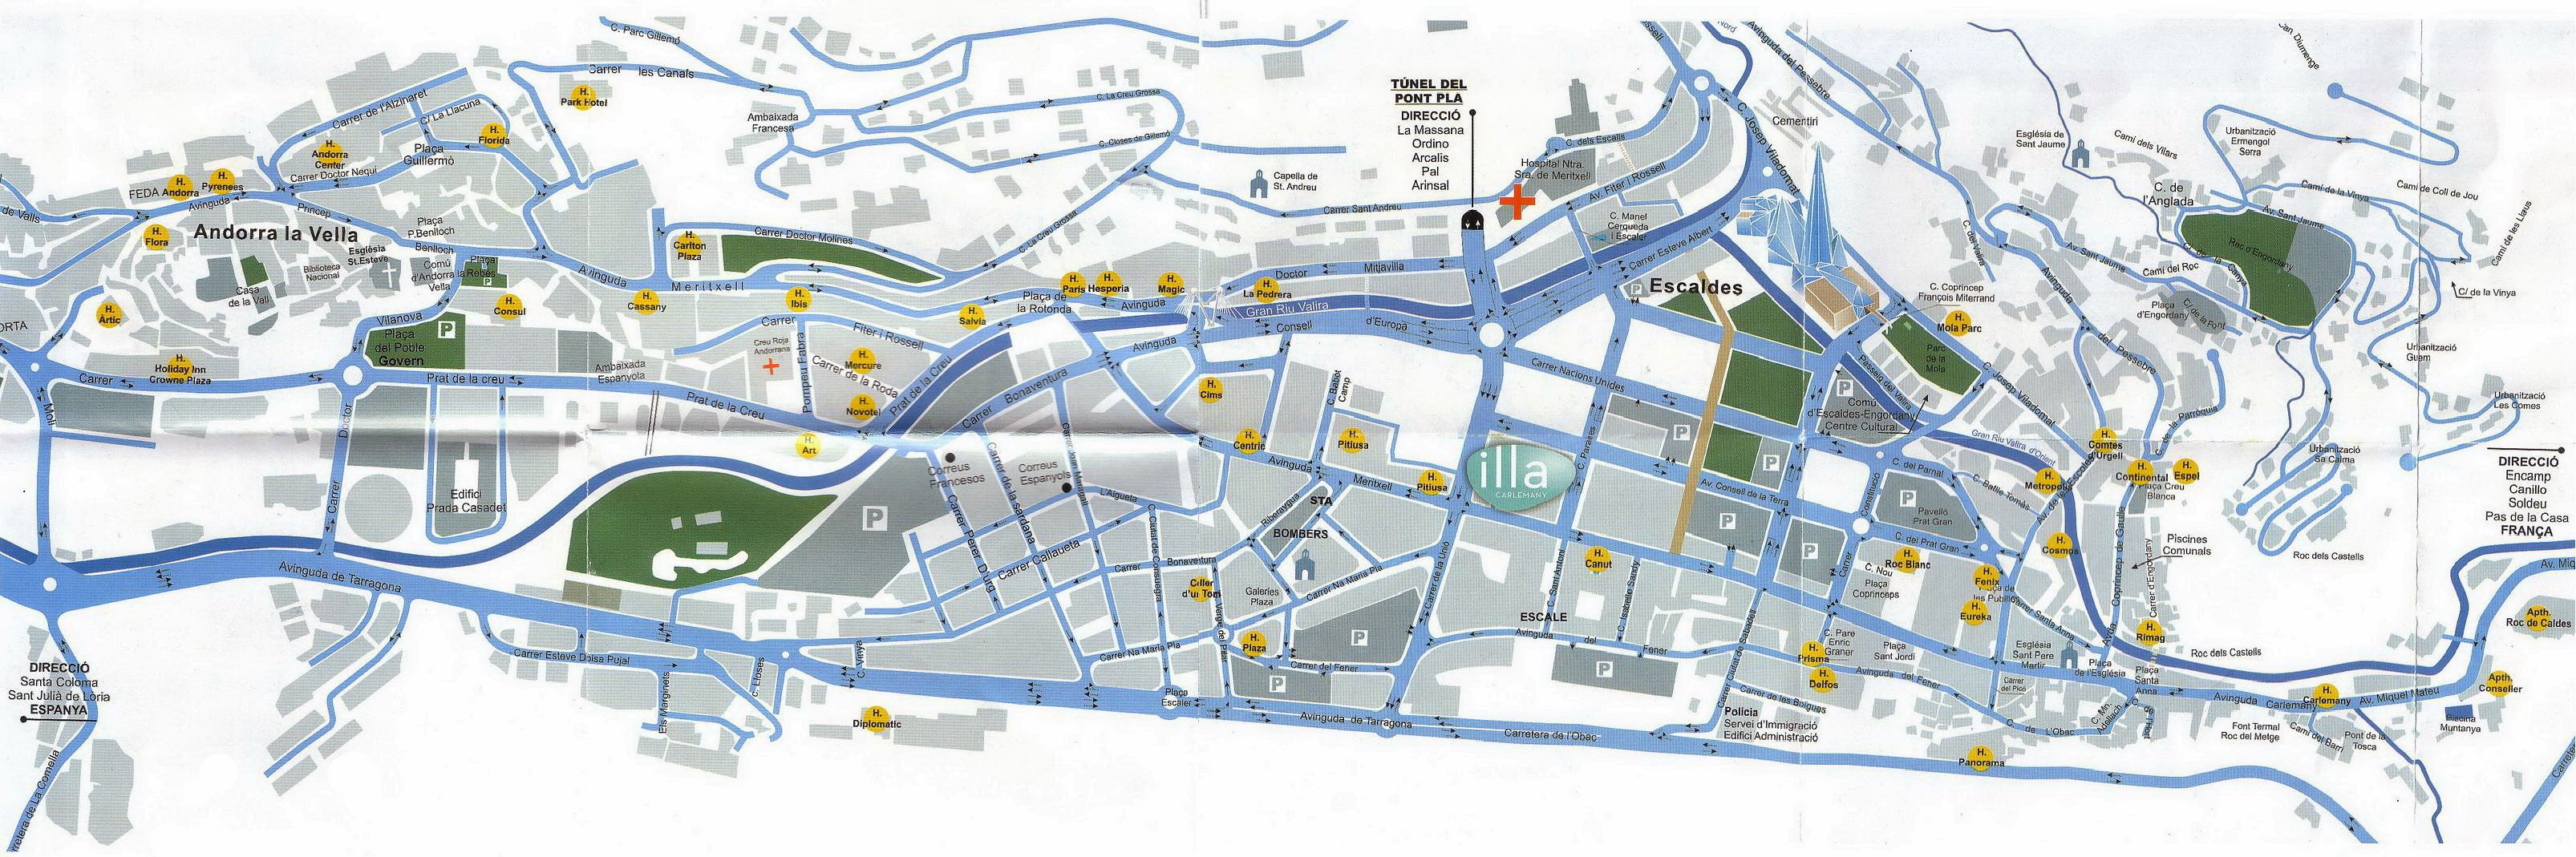 Large Andorra la Vella Maps for Free Download and Print High